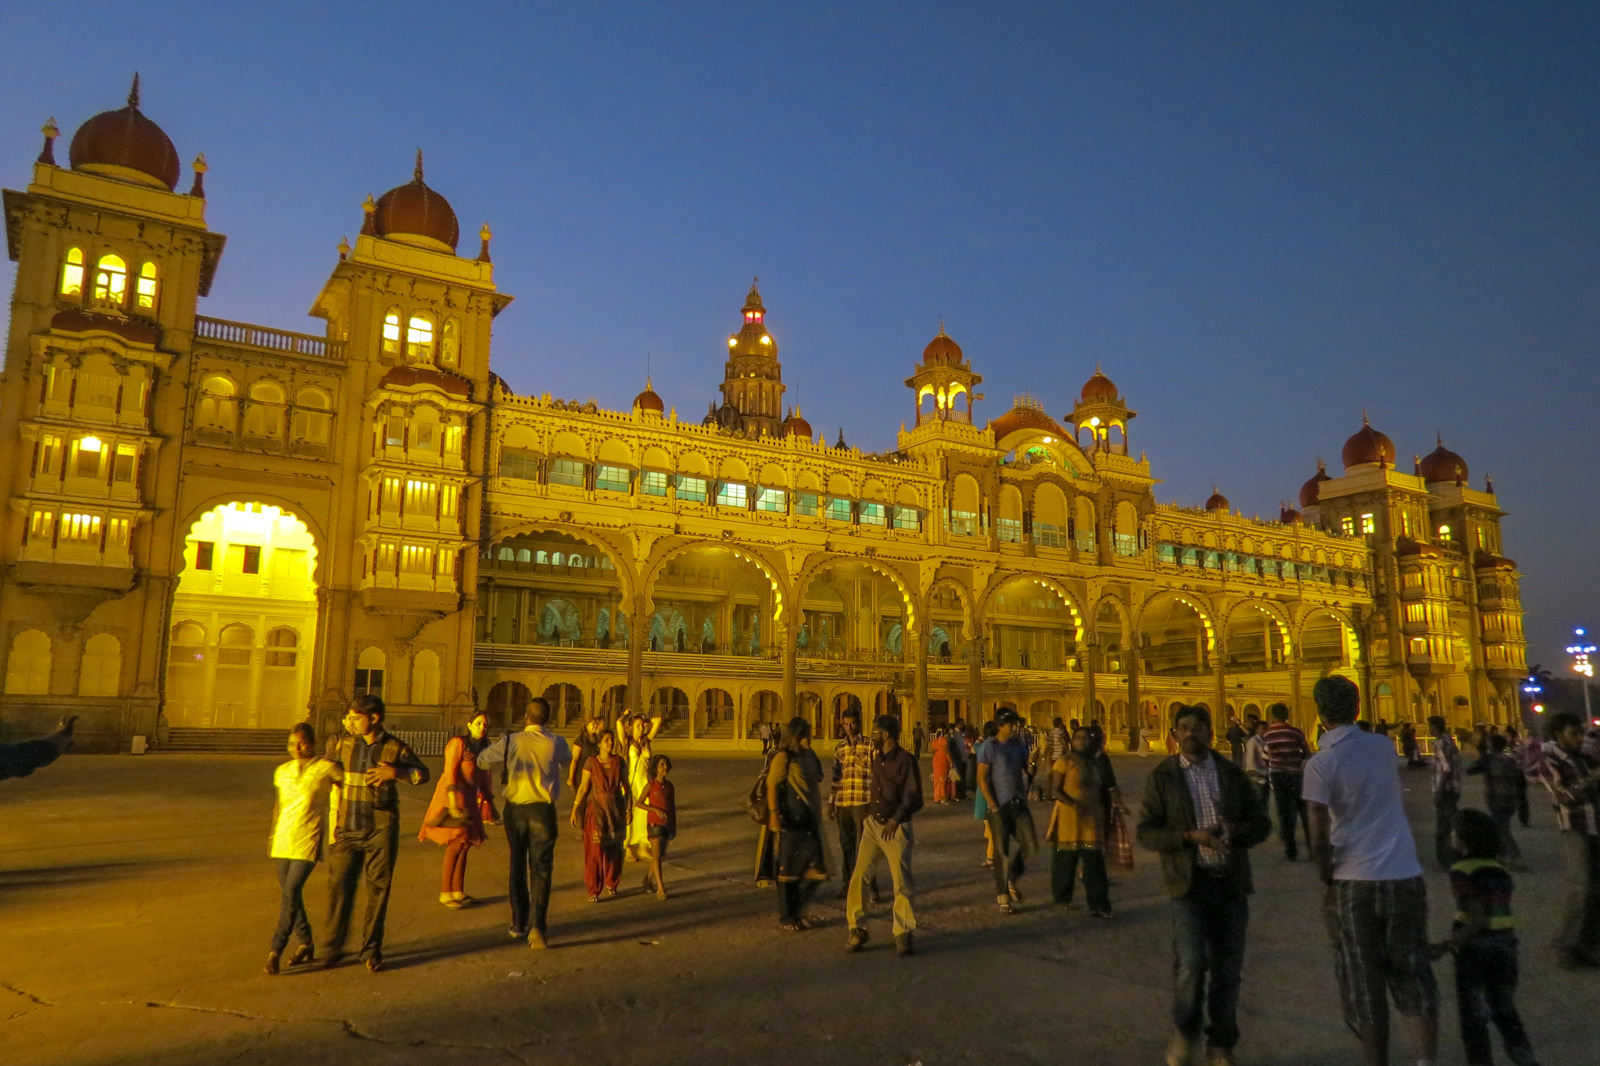 mysore-palace-india-before-evening-lights-go-on